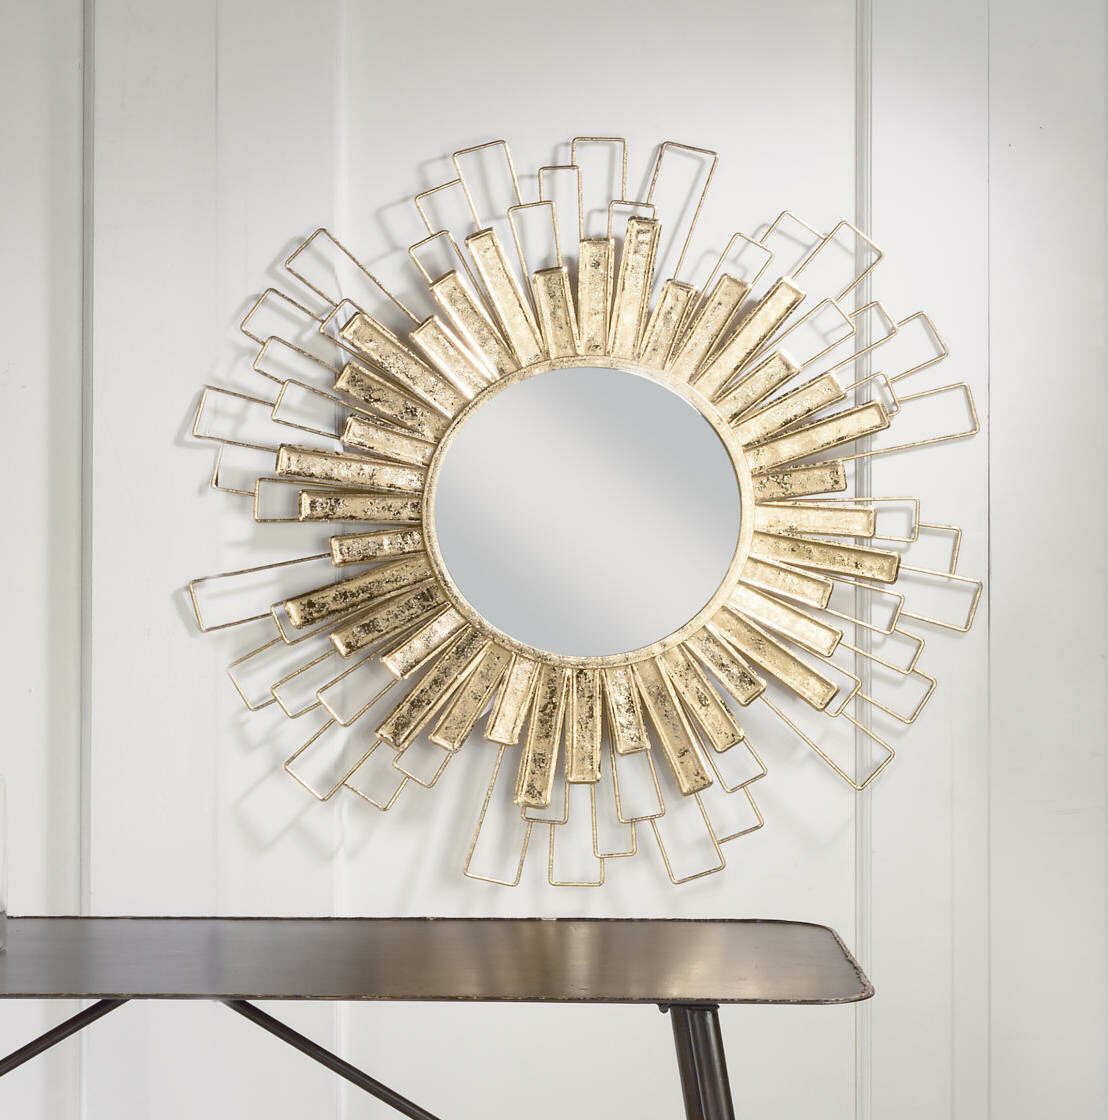 Kempner Foil Sunburst Beveled Venetian Wall Mirror With Well Known Estrela Modern Sunburst Metal Wall Mirrors (View 14 of 20)